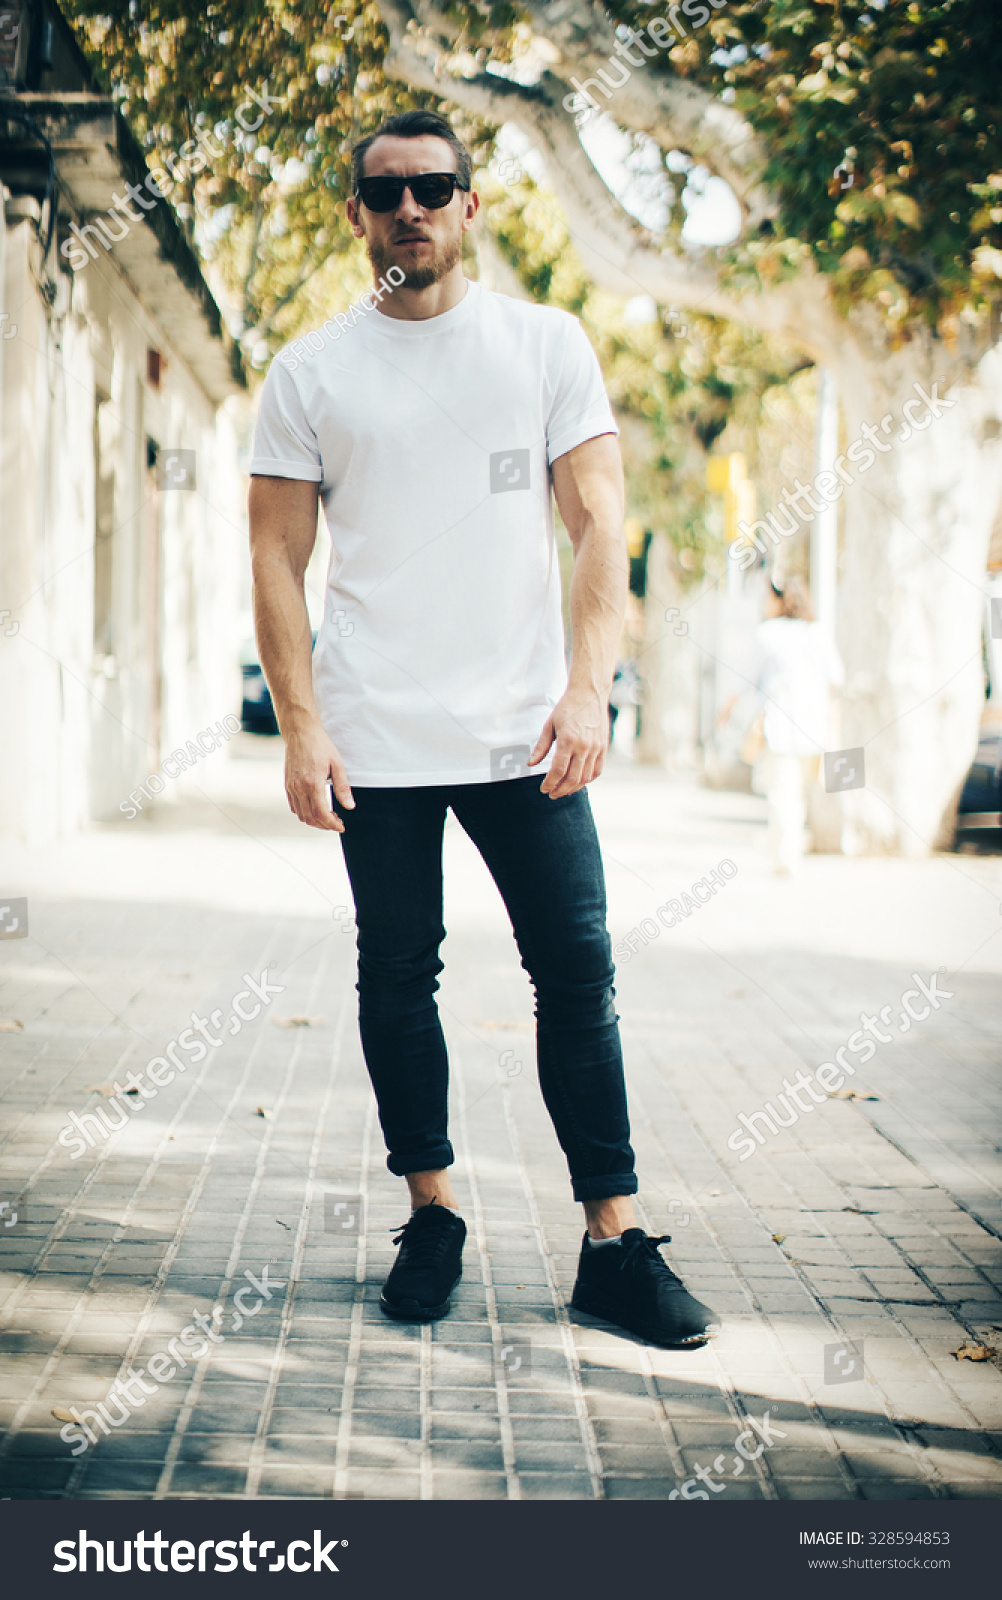 White t shirt and blue jeans - Bearded Guy Wearing White Blank T Shirt And Blue Jeans